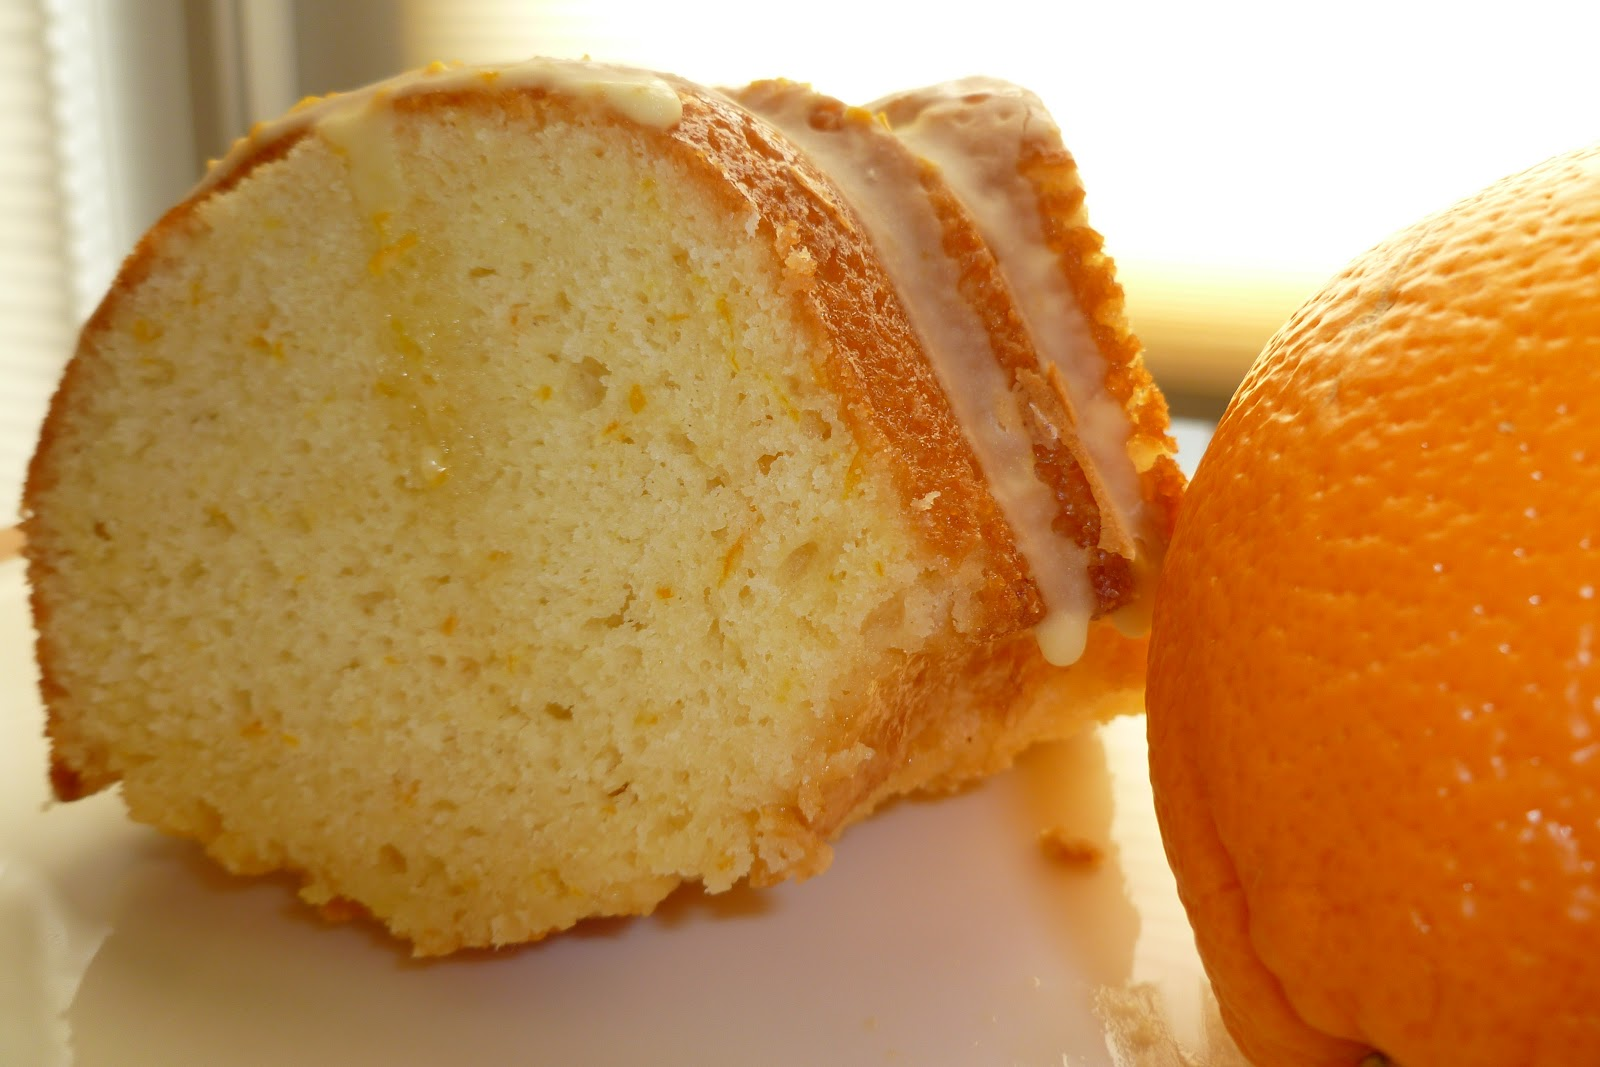 The Pastry Chef's Baking: Orange Cake a la Dorie Greenspan